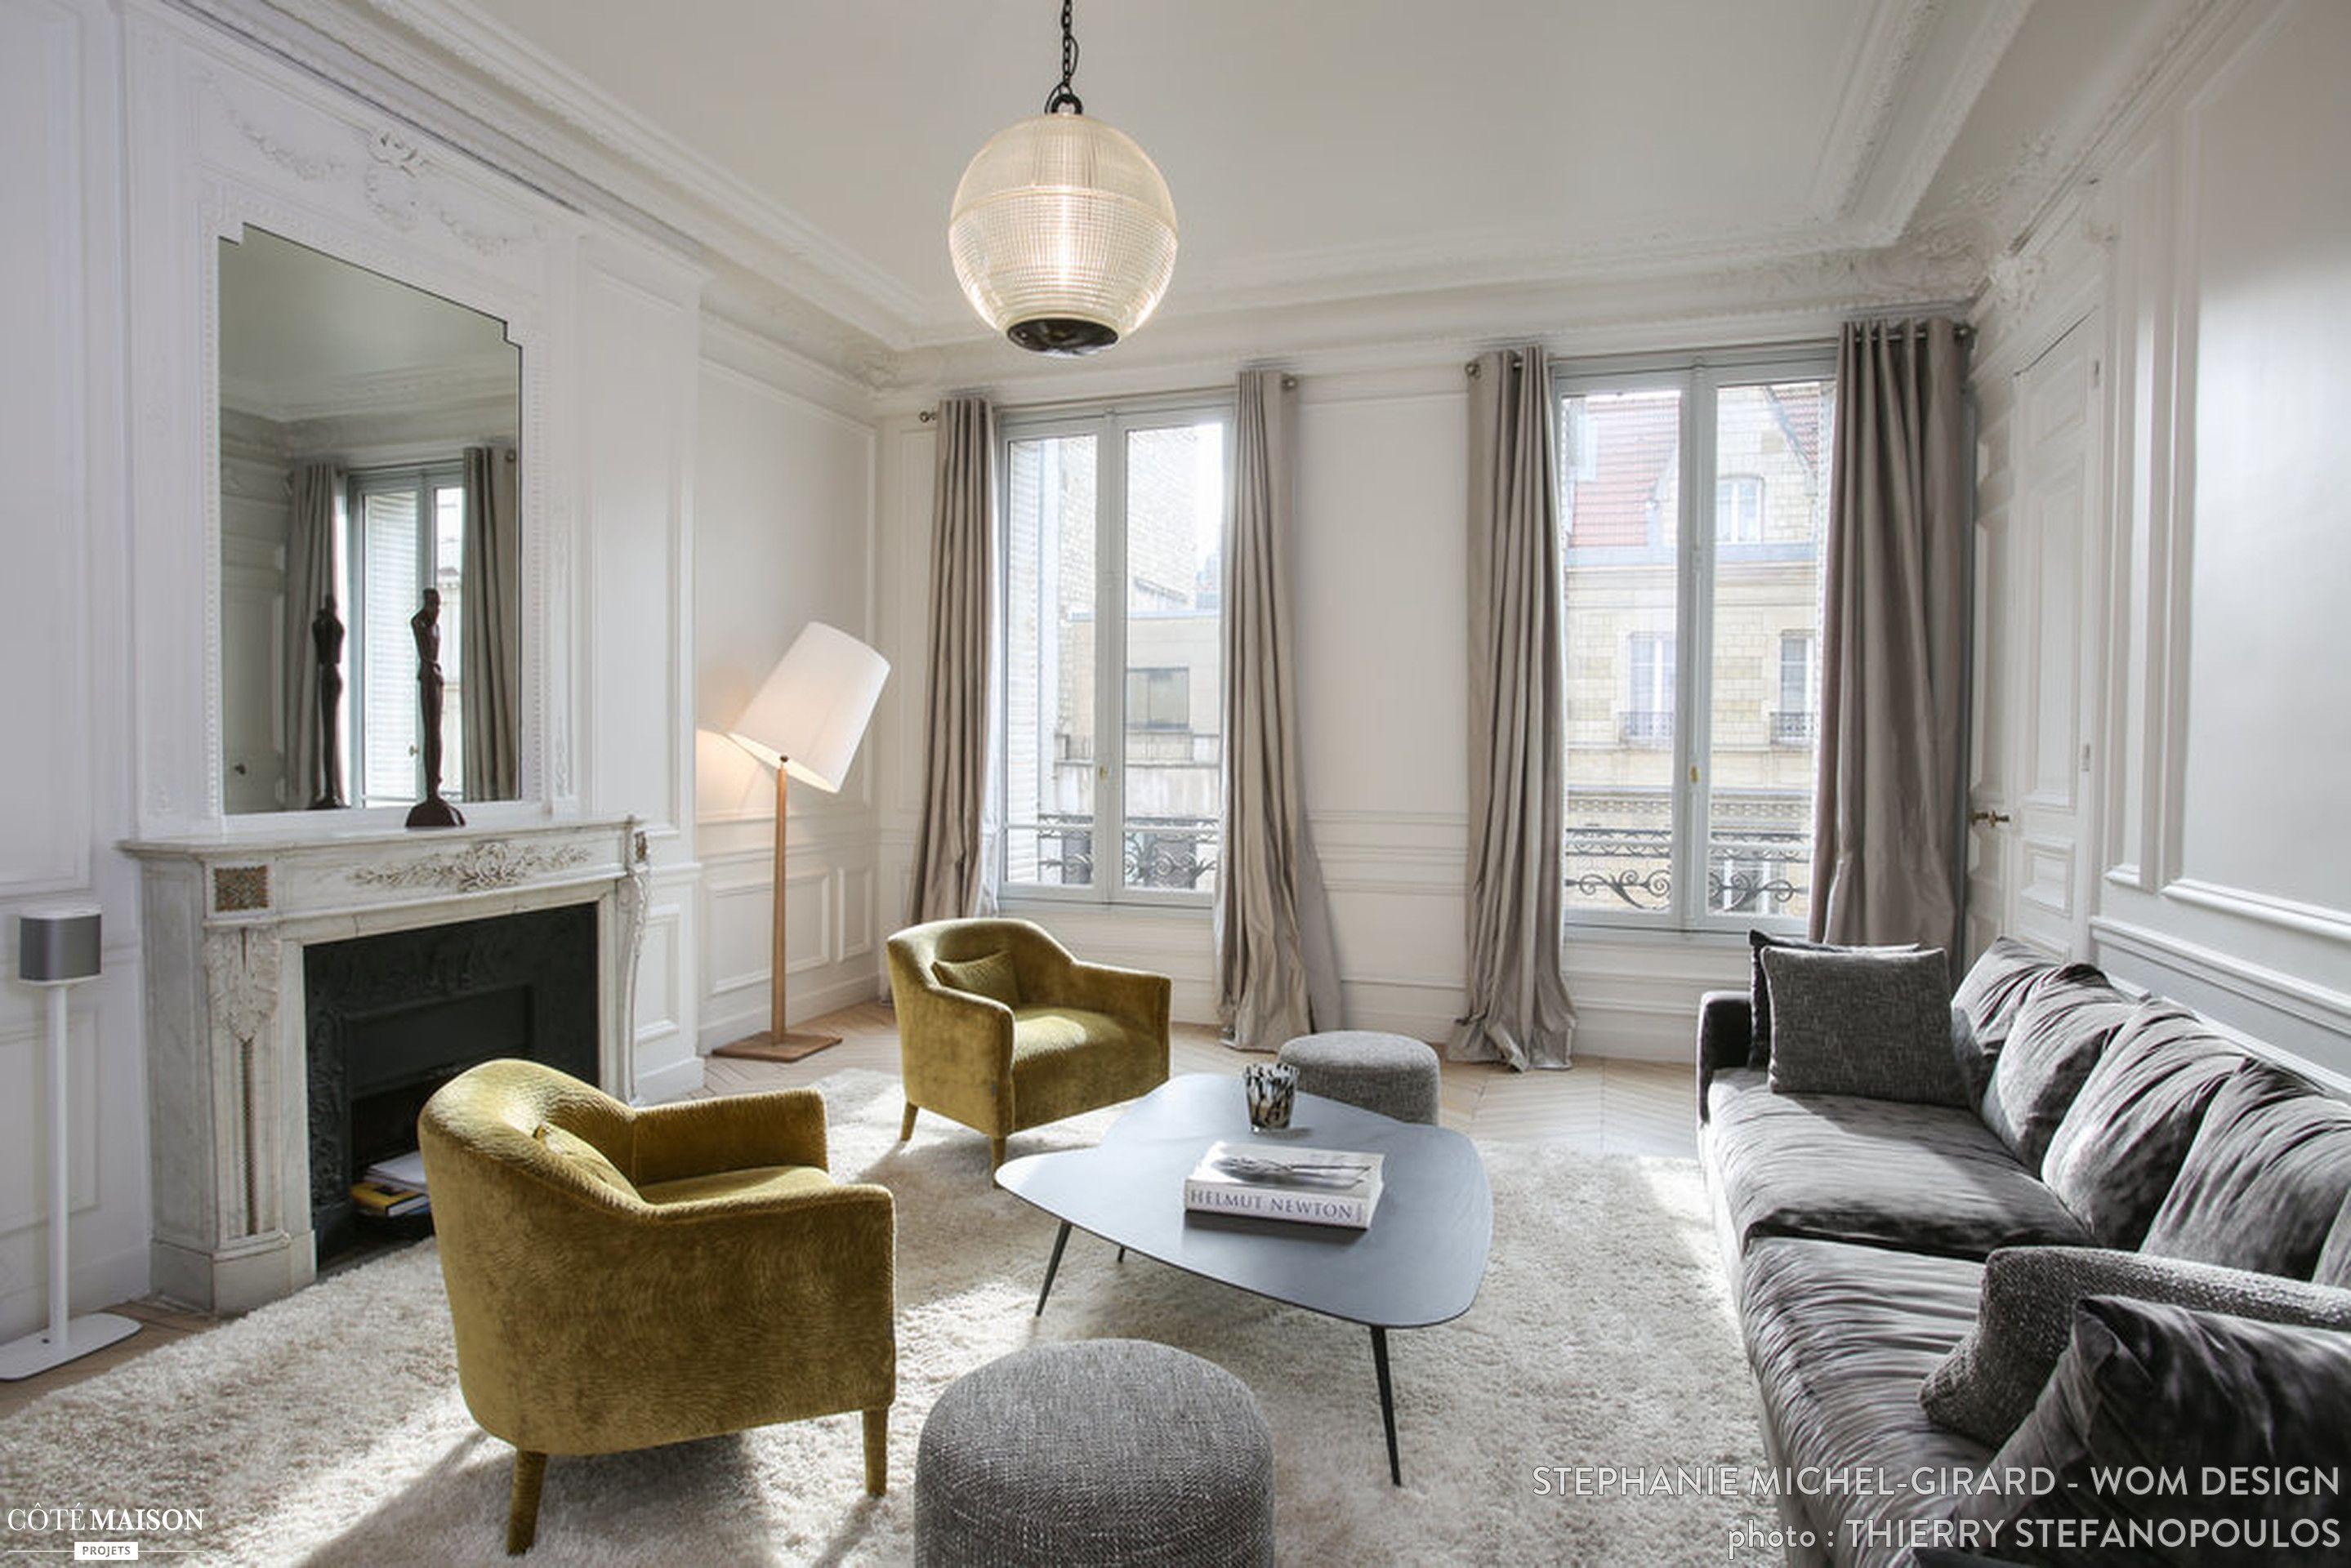 R novation et d coration d 39 un appartement haussmanien de 200 m2 salon wo - Deco salon appartement ...